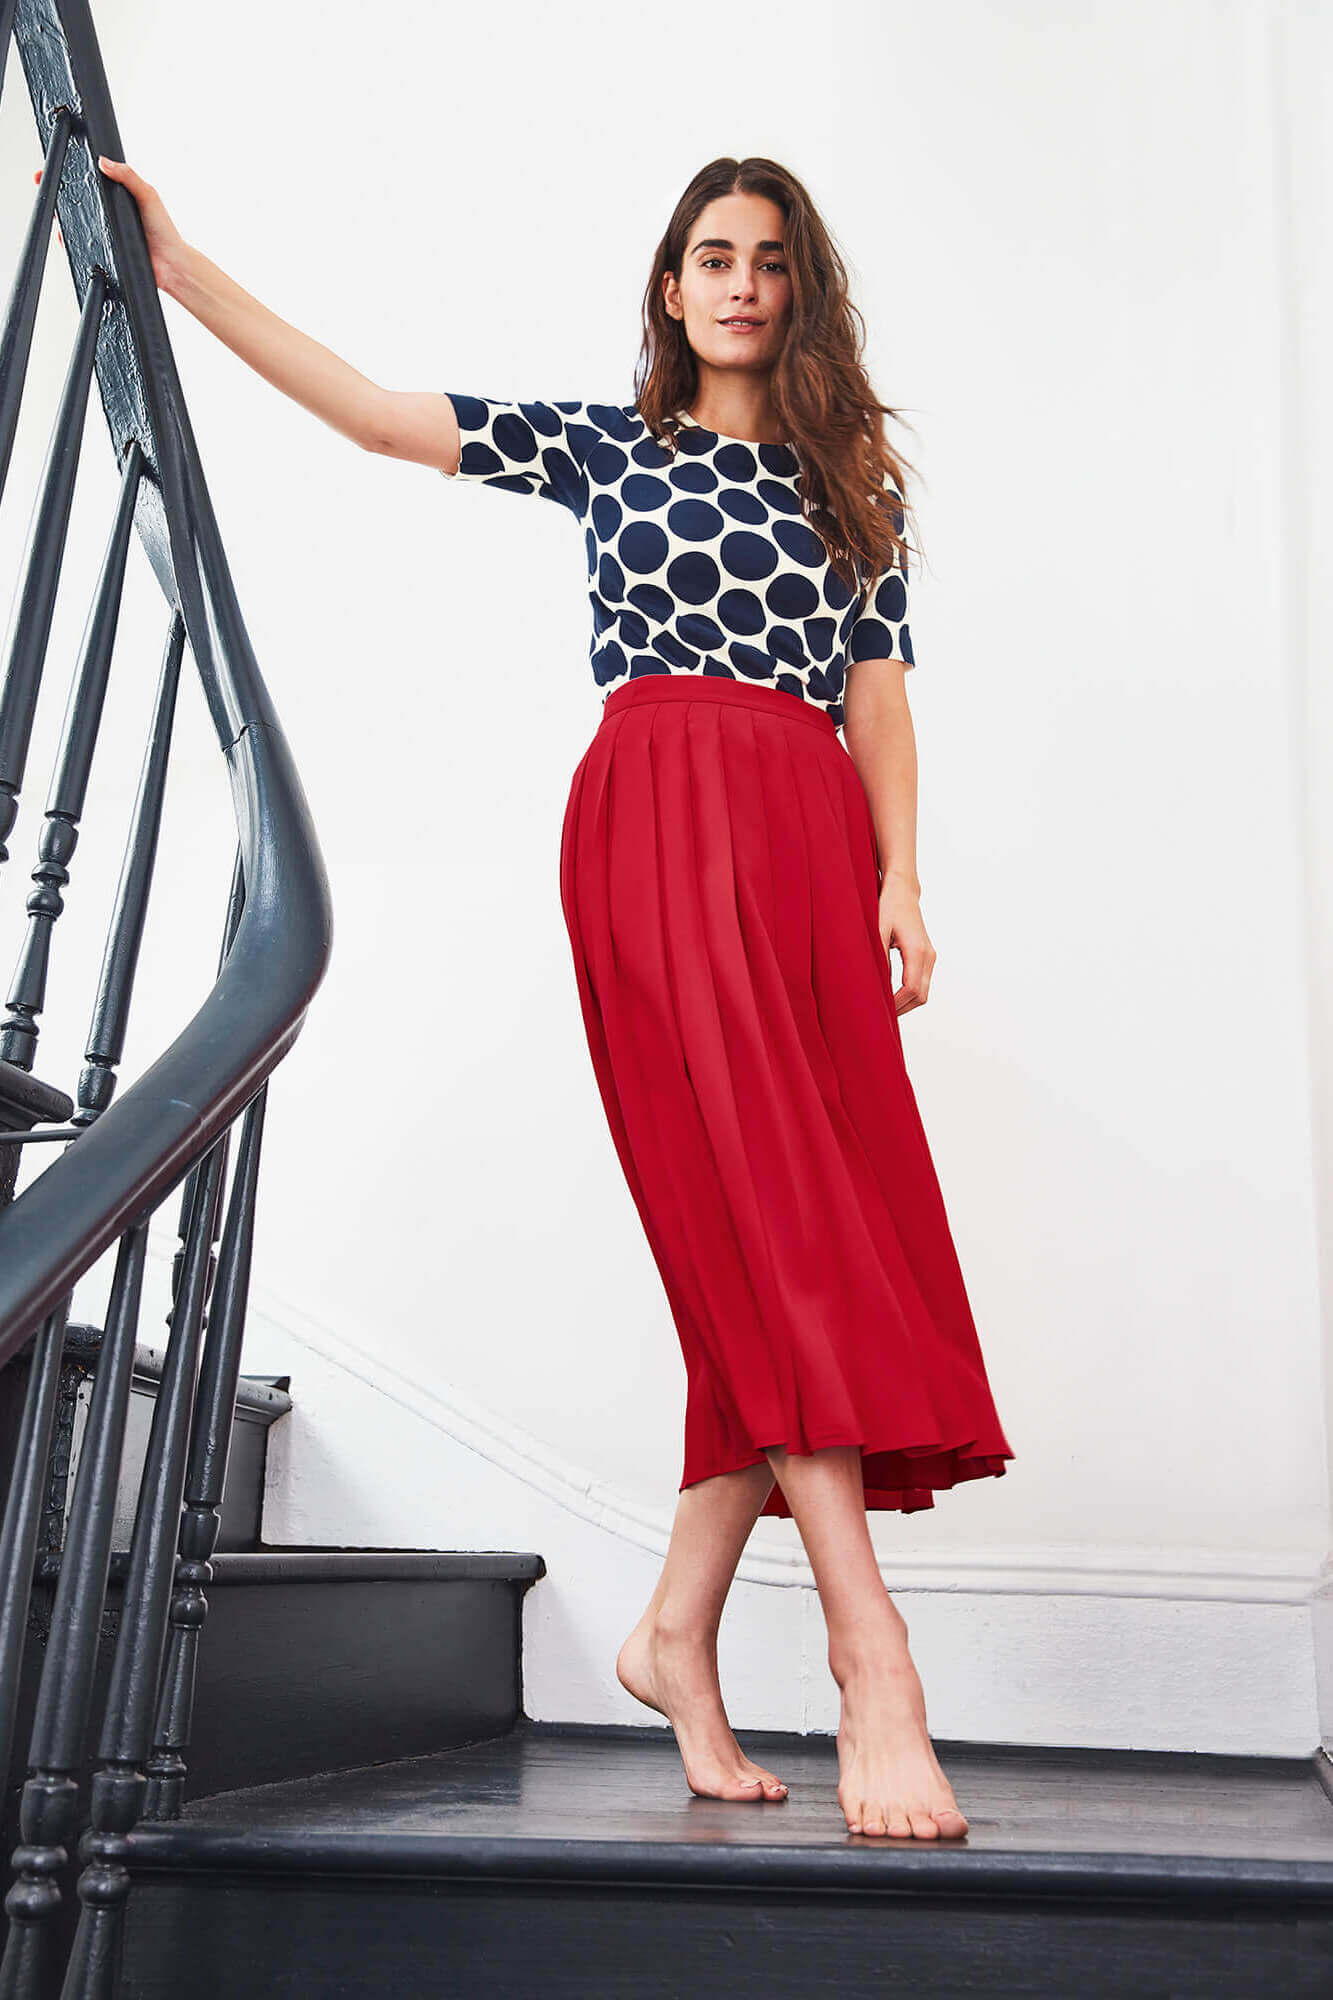 Young brunette wearing red skirt and polka dot shirt